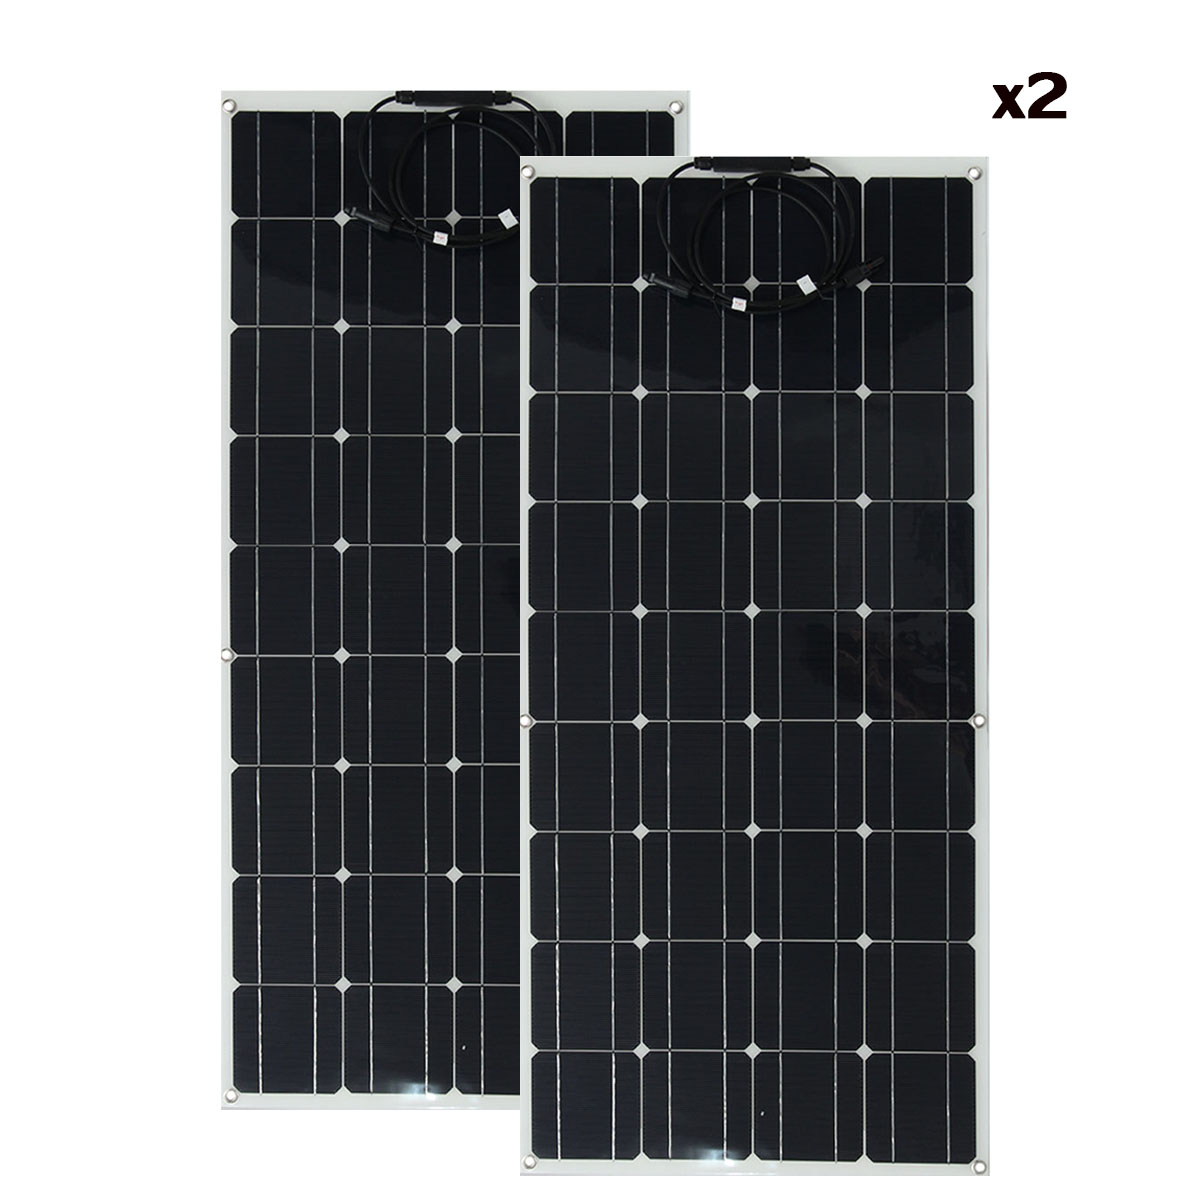 2PCS Elfeland SP-39 12V 120W 1180*540mm Semi-flexible Solar City Panel With 1.5m Cable